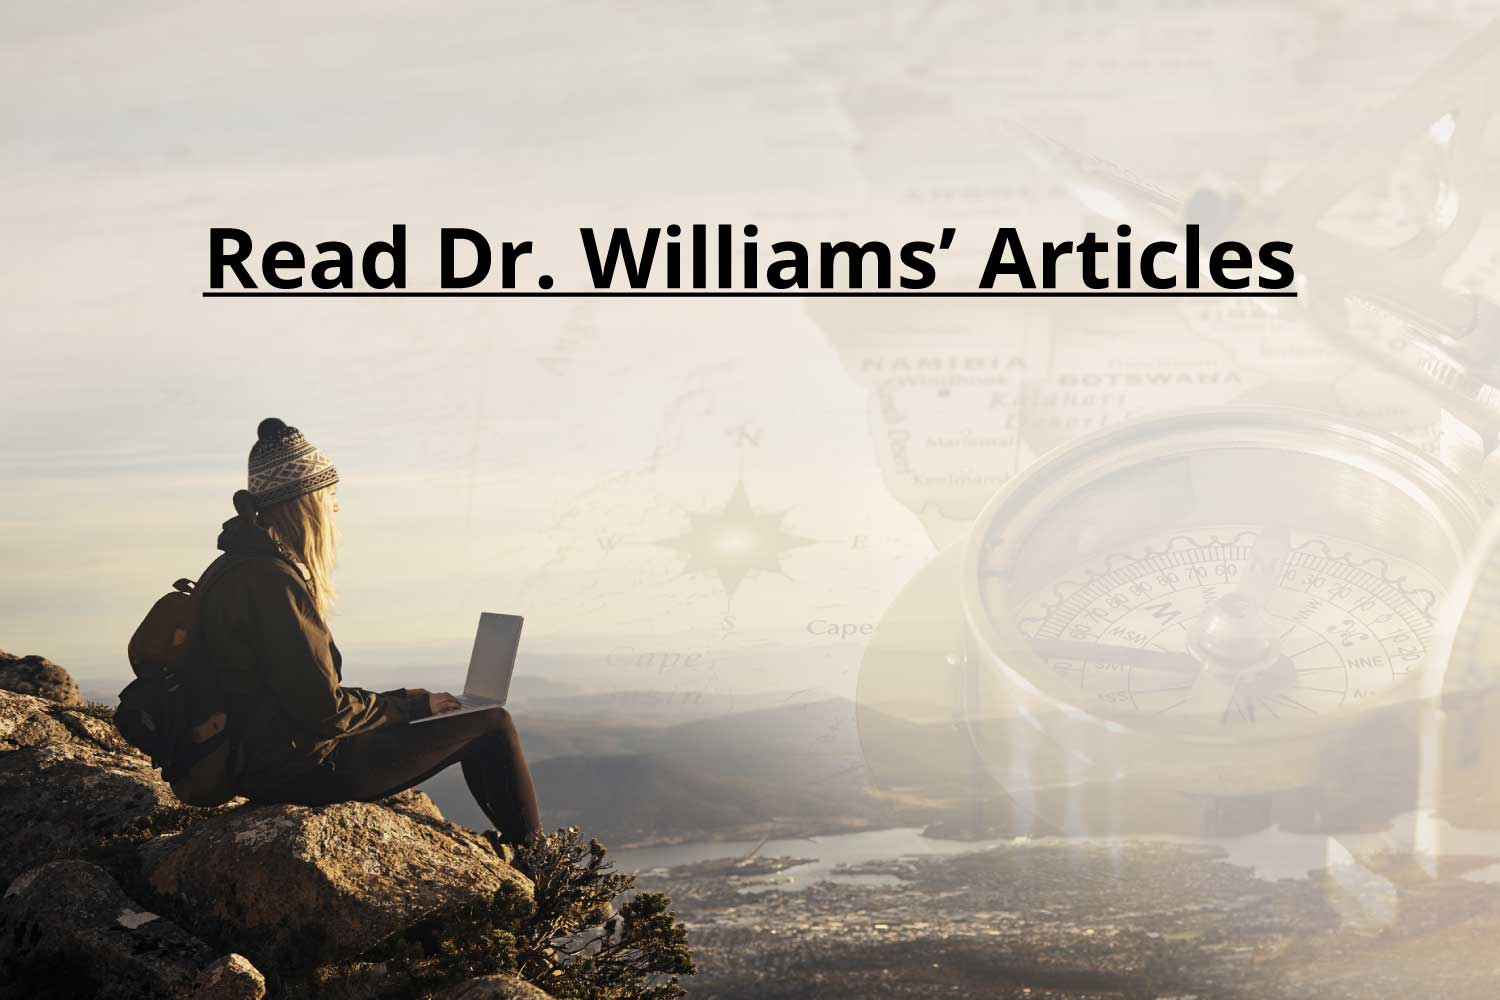 Read Dr. Williams' Articles